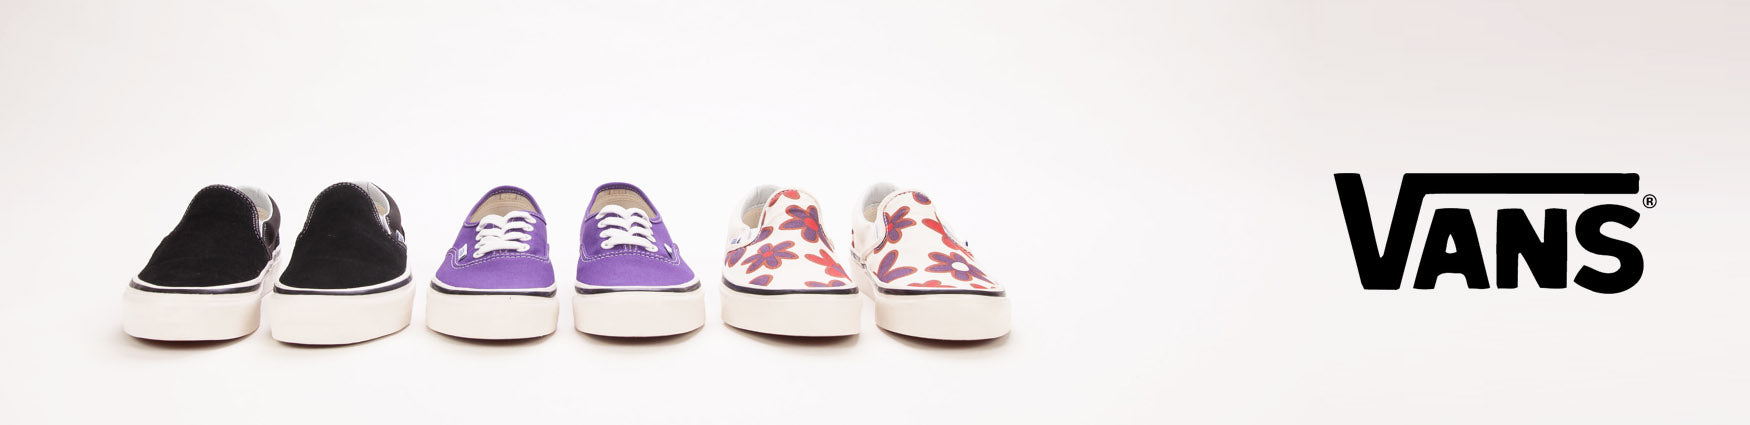 Shop the Vans AW18 Collection from Roo's Beach UK